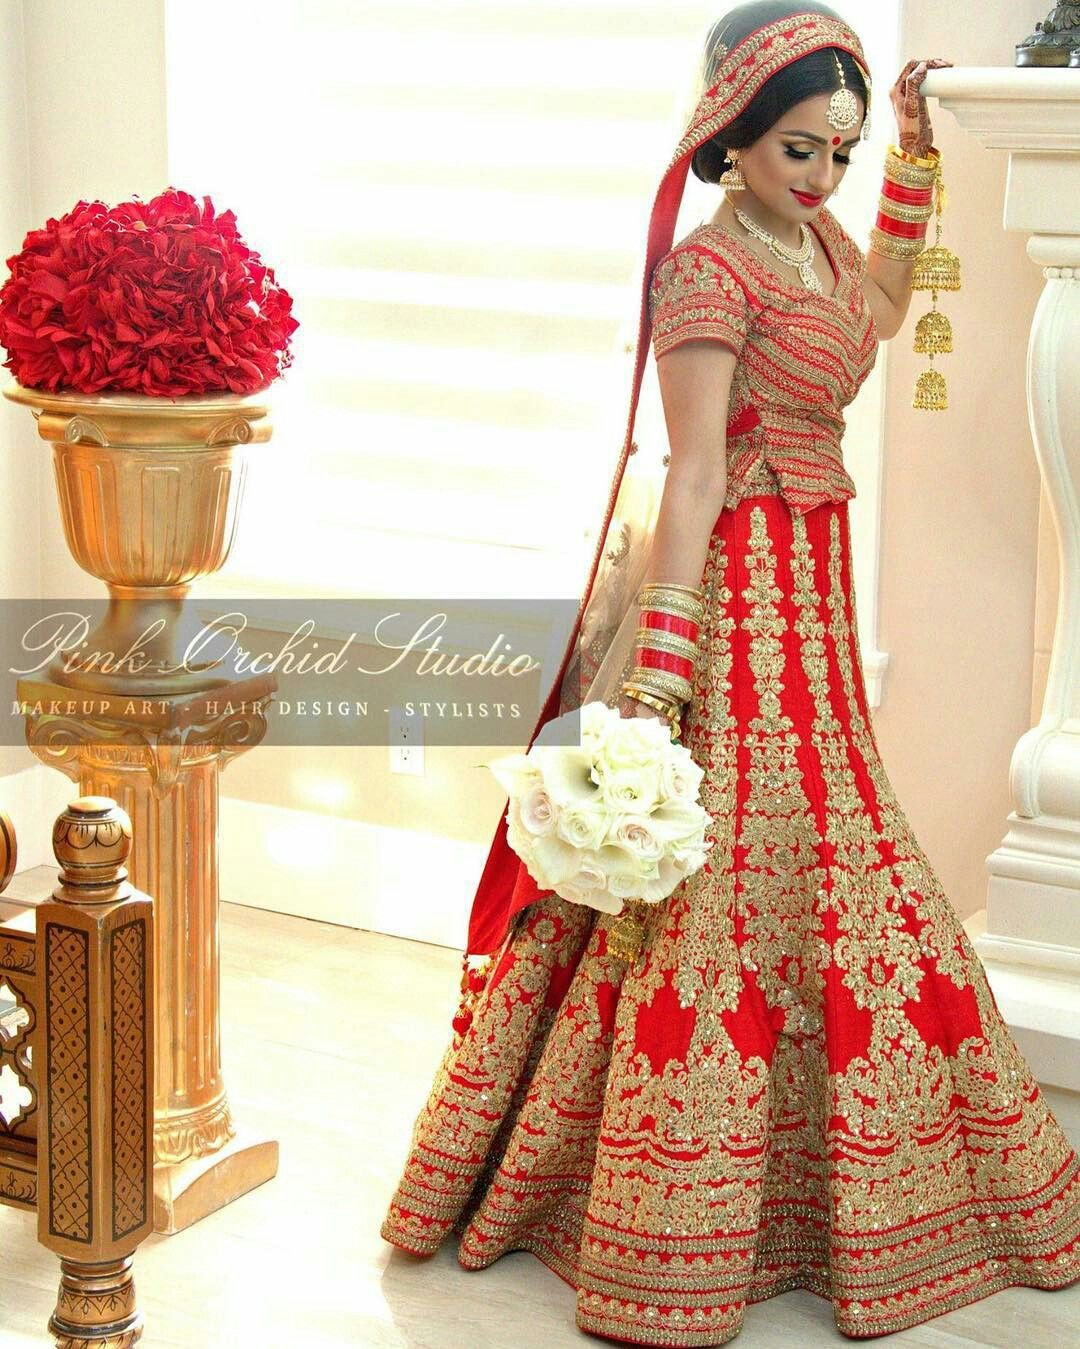 Punjabi wedding dress images for Punjabi wedding dresses online